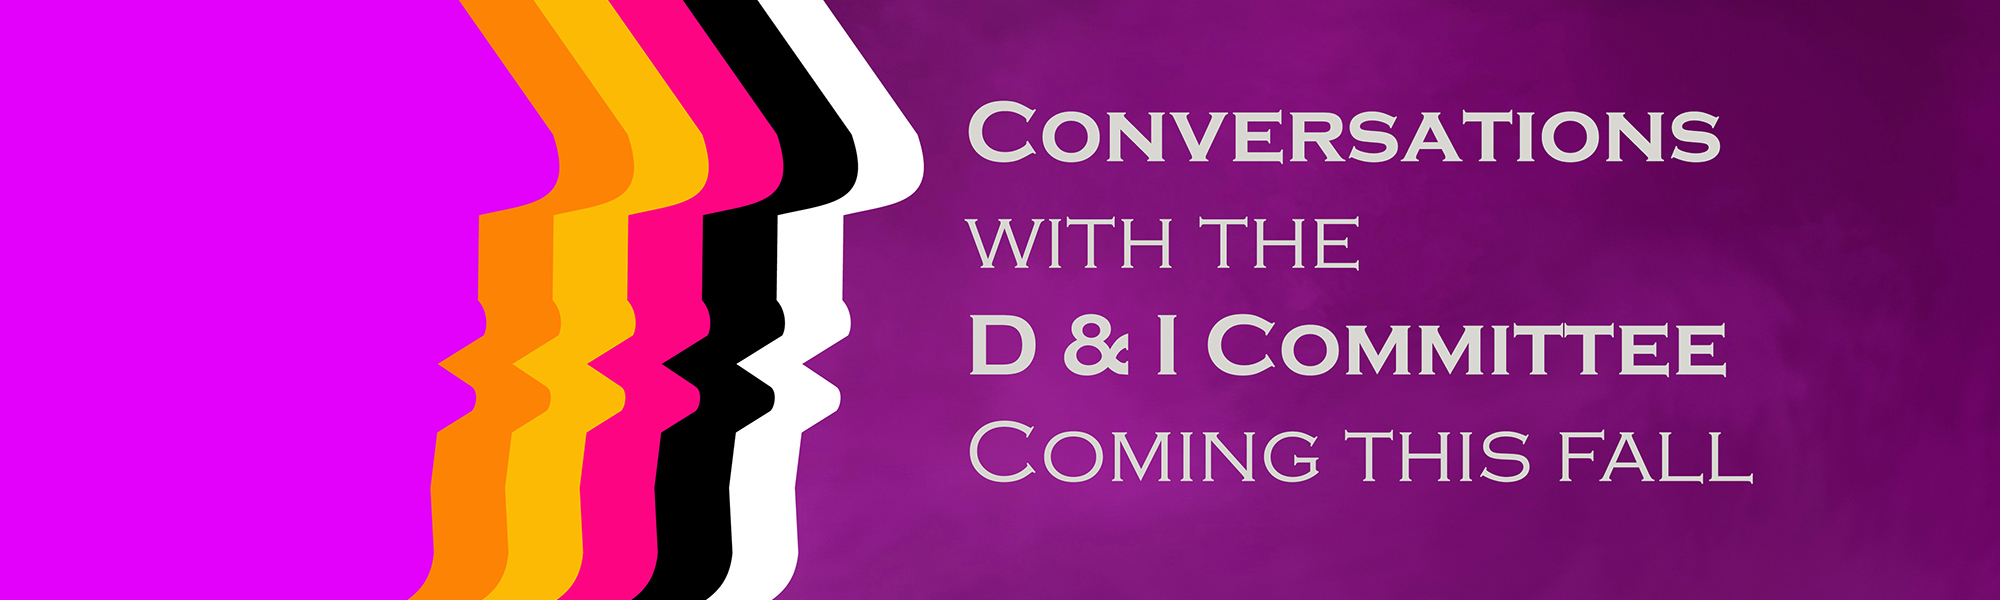 Conversations with D&I committee banner